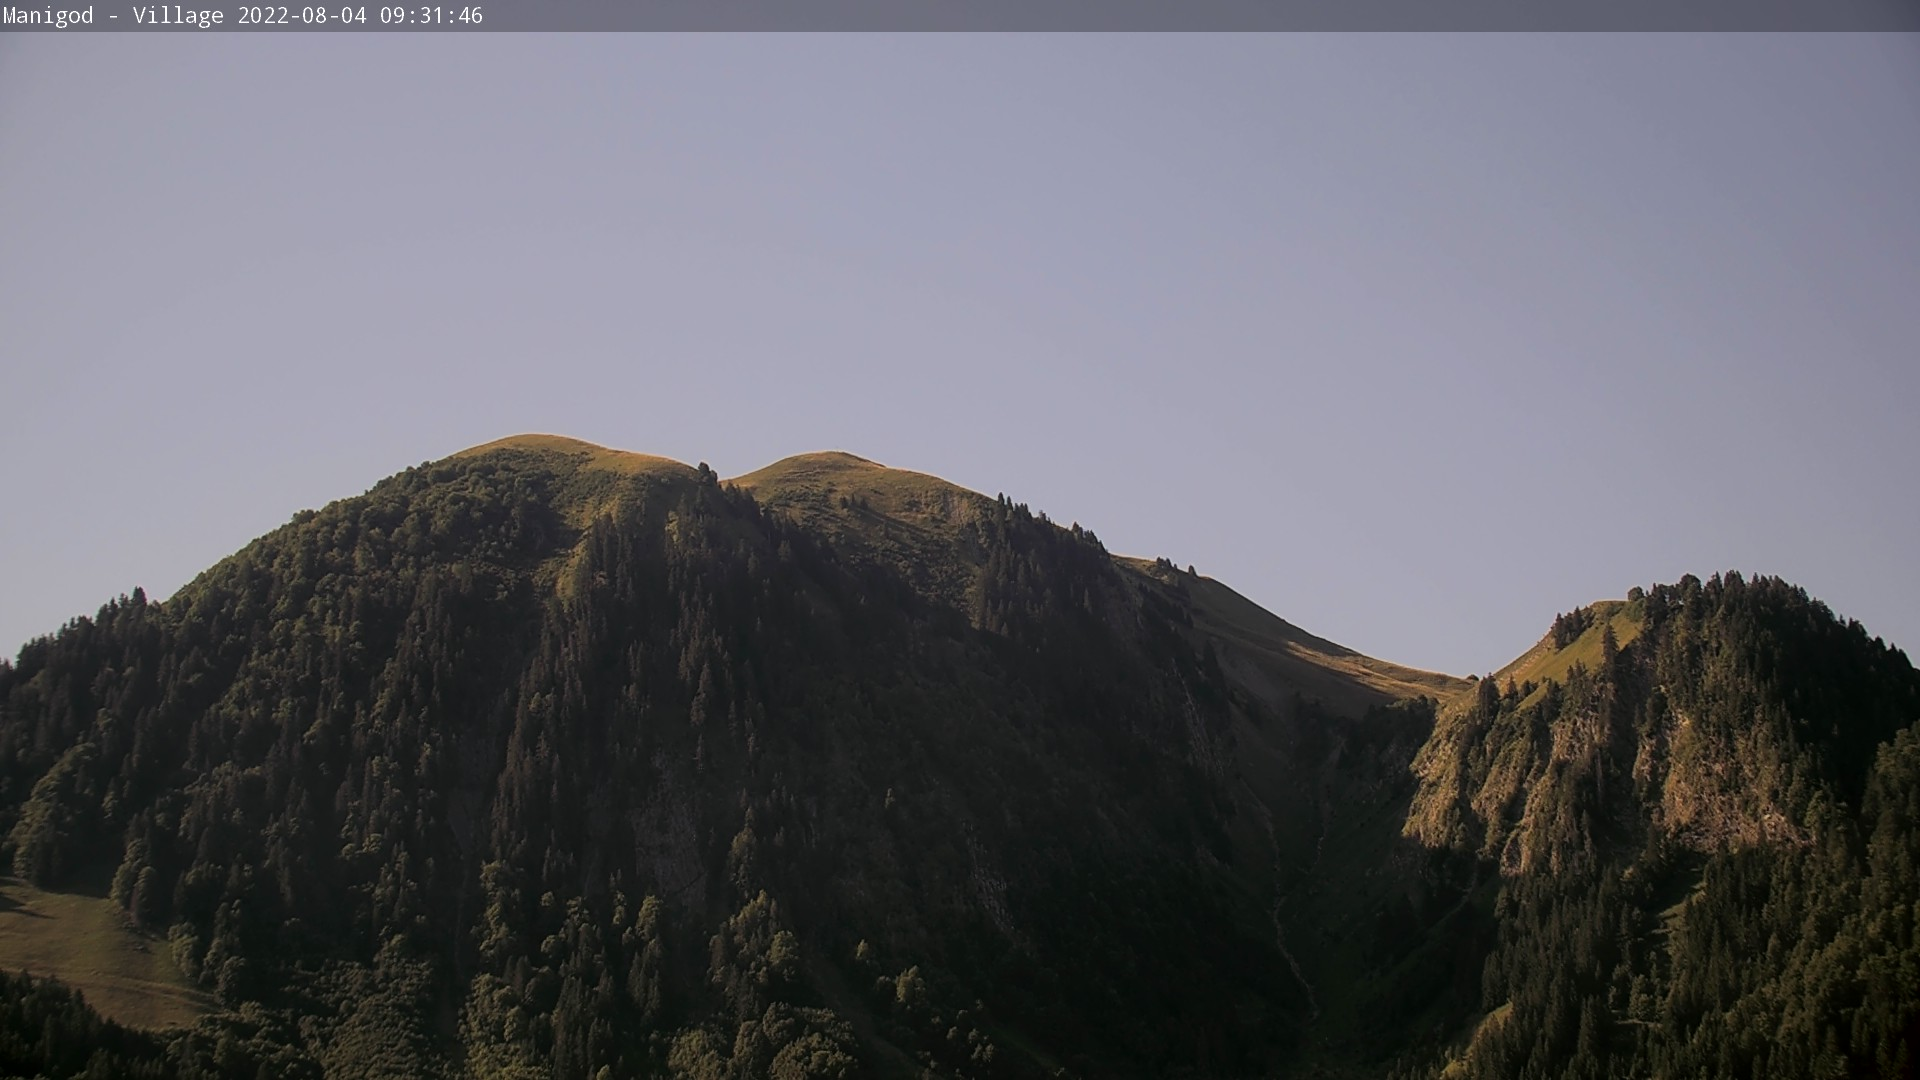 Manigod Le Sulens webcam, La Clusaz station de ski, France